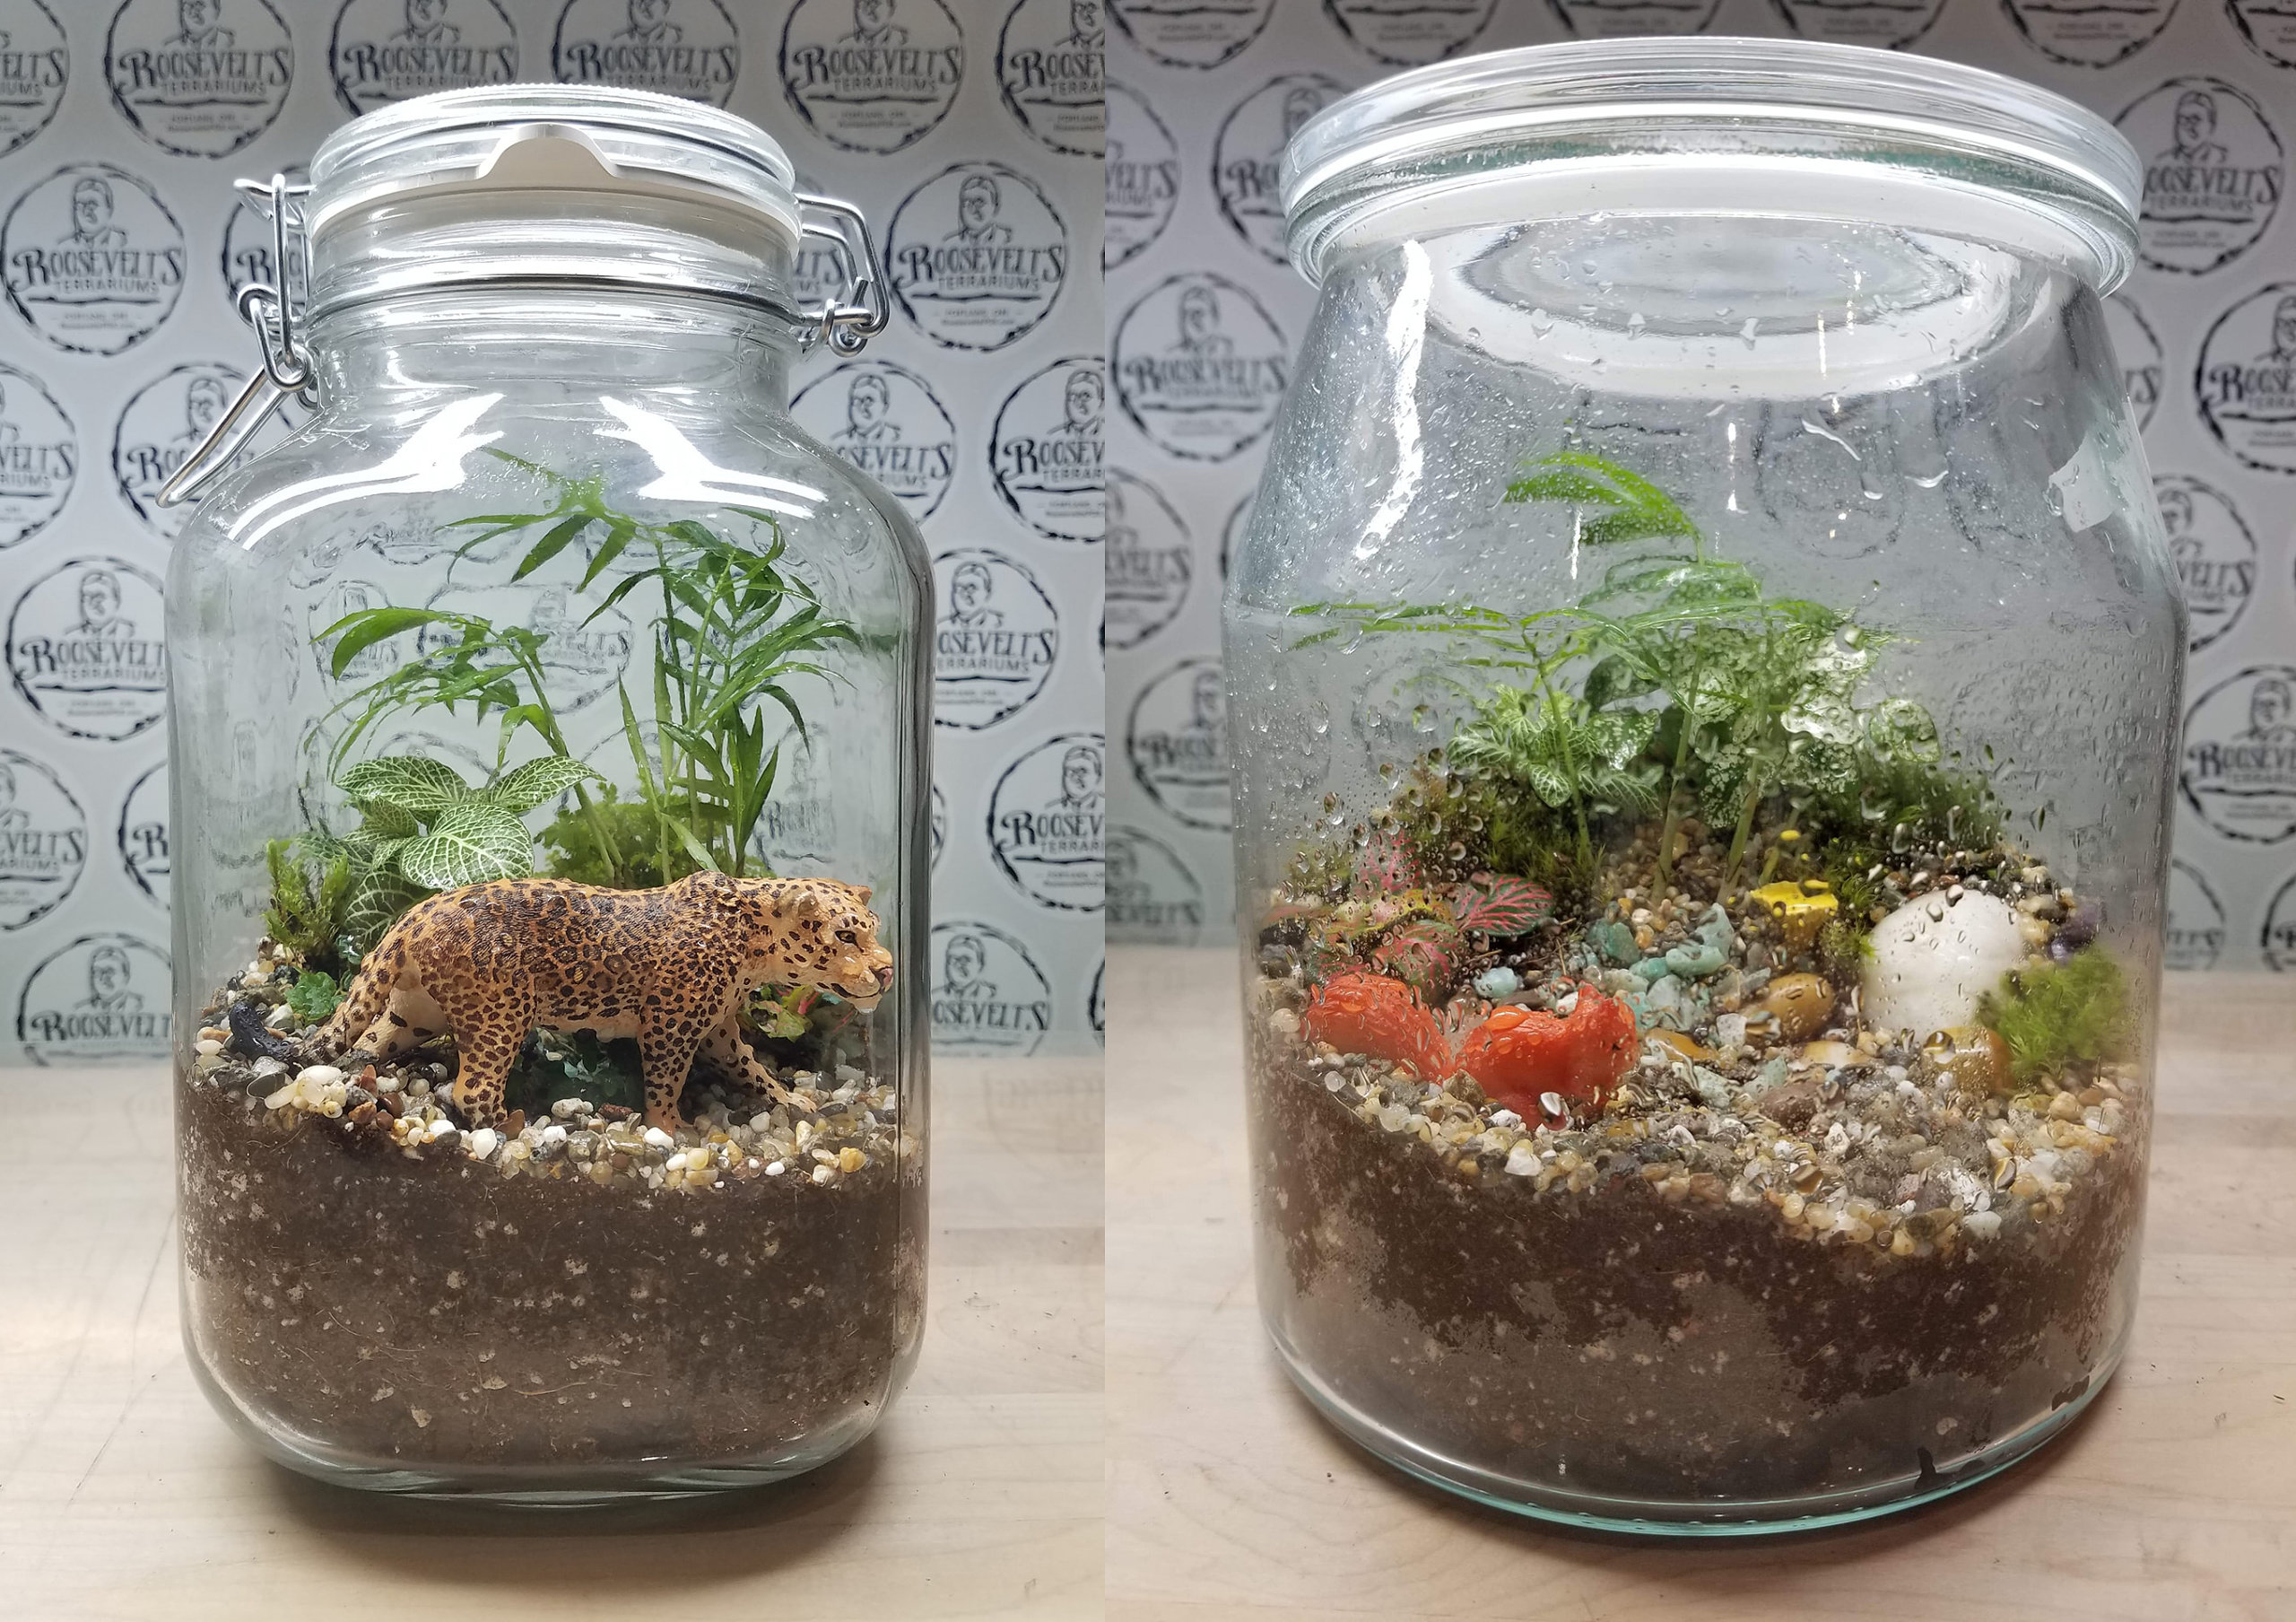 Roosevelt's Terrariums - Finished